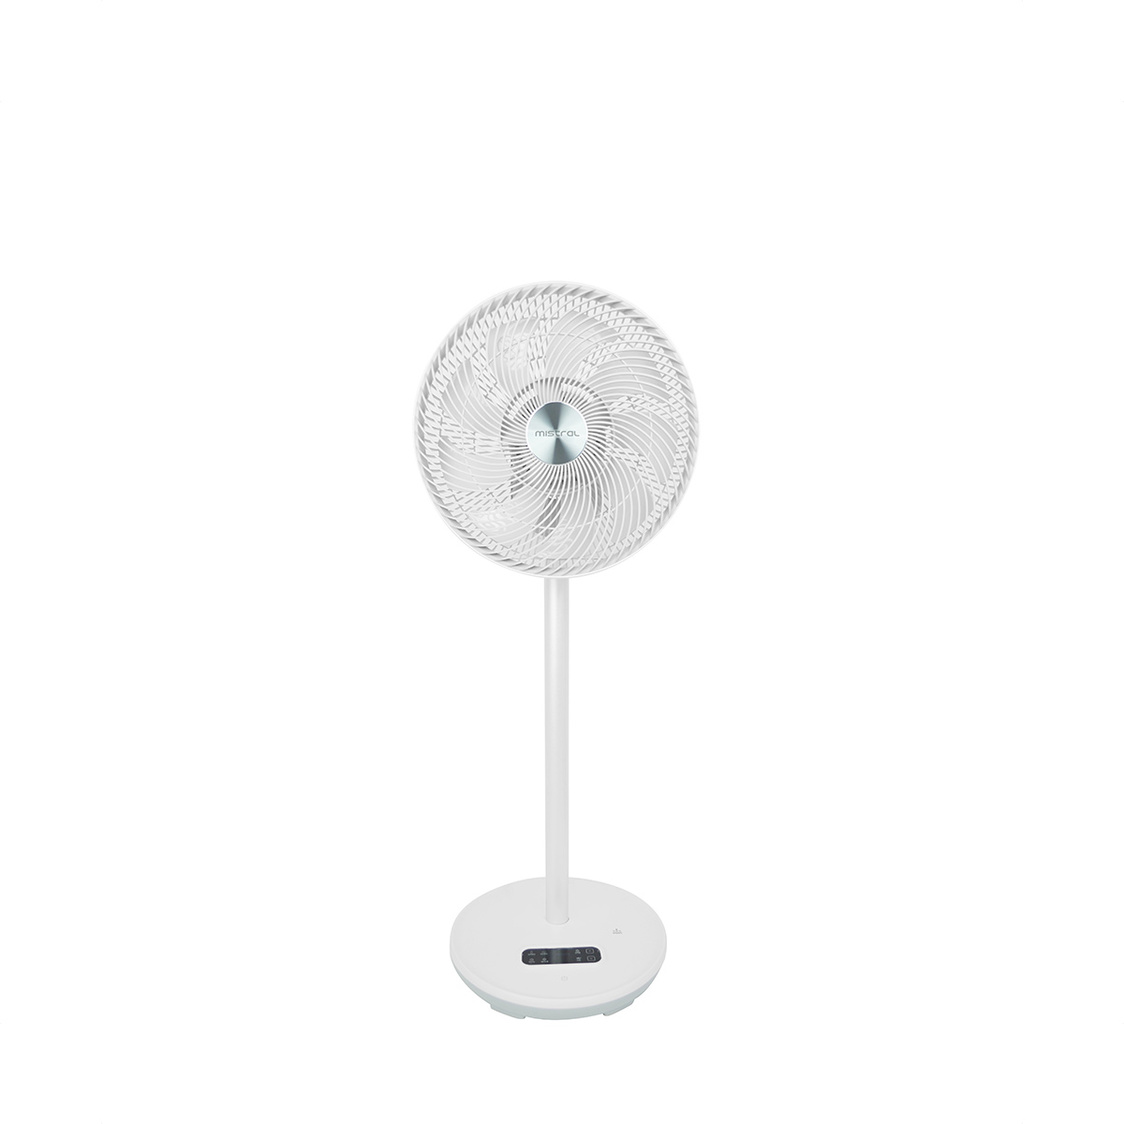 Mistral MIMICA 12 High Velocity Fan with Remote Control